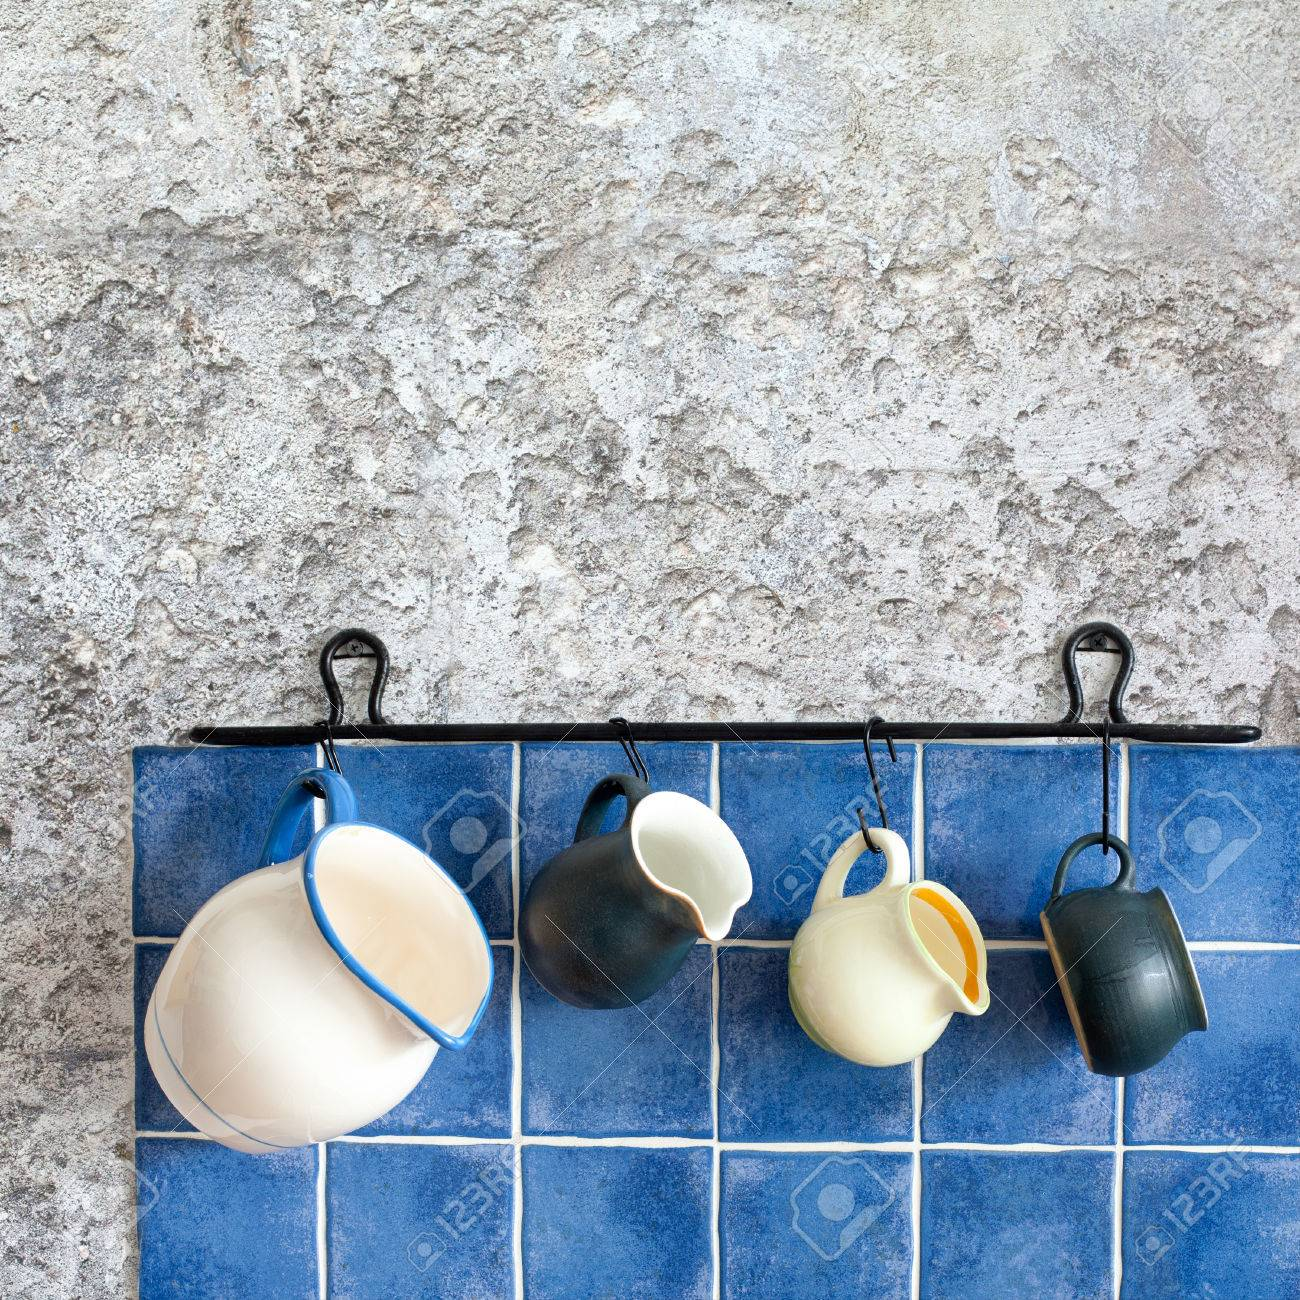 Kitchen Accessories Hanging Jugs Retro Design Ceramic Pitchers Stock Photo Picture And Royalty Free Image 44076664